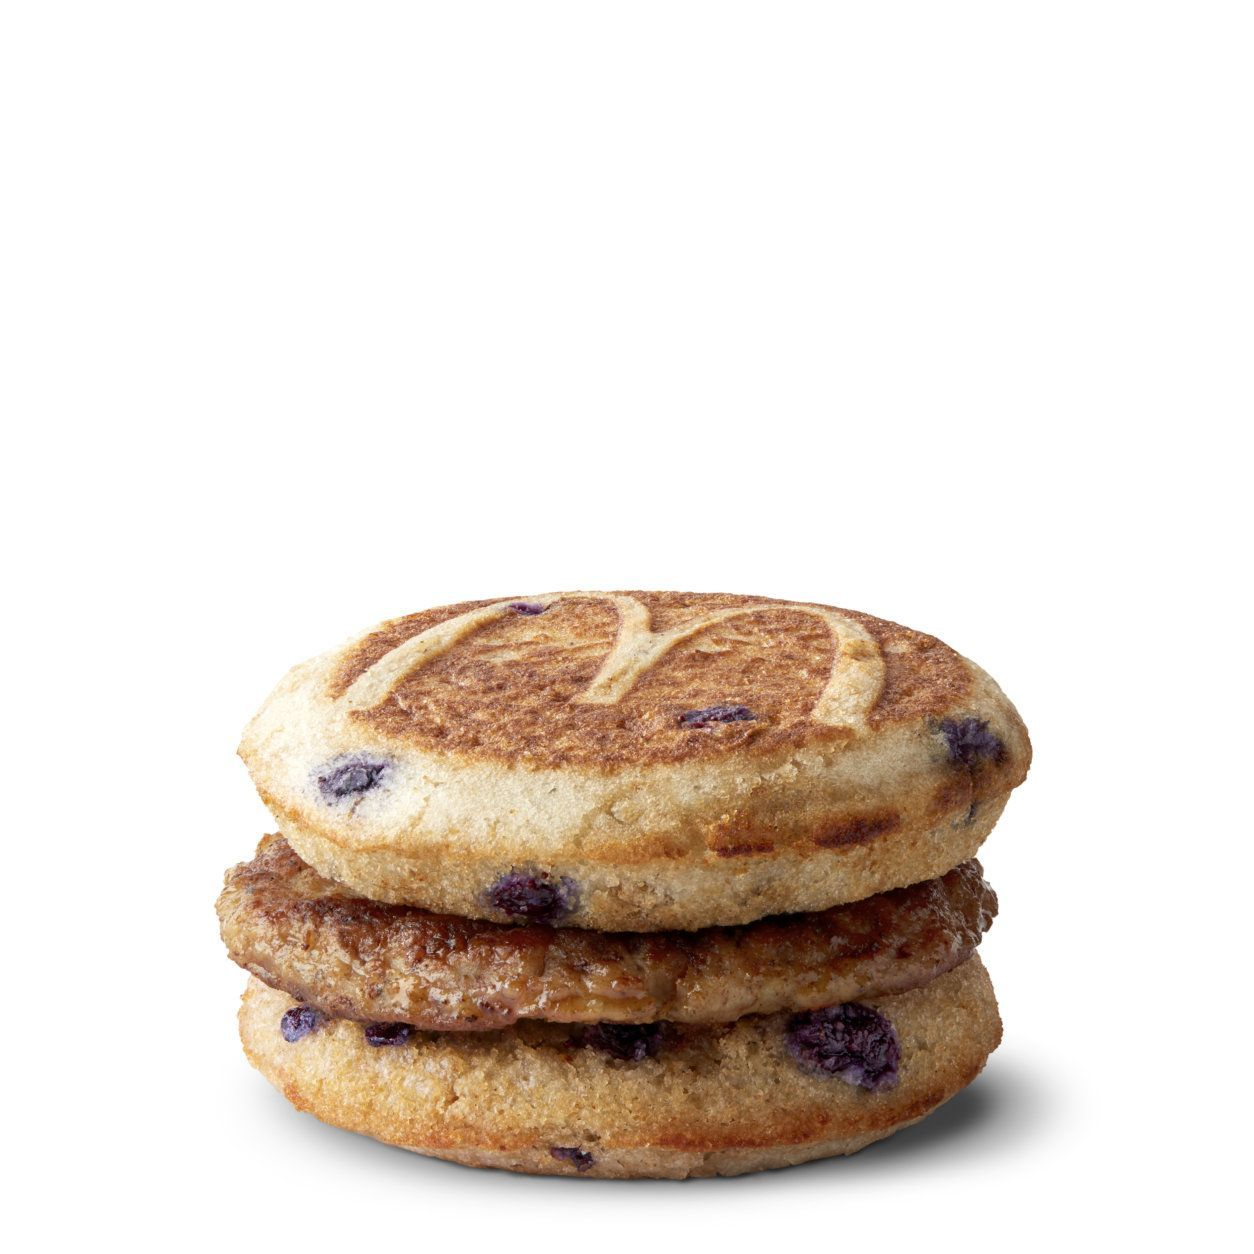 The Blueberry McGriddles comes in three versions: sausage; sausage, egg and cheese; and bacon, egg and cheese.